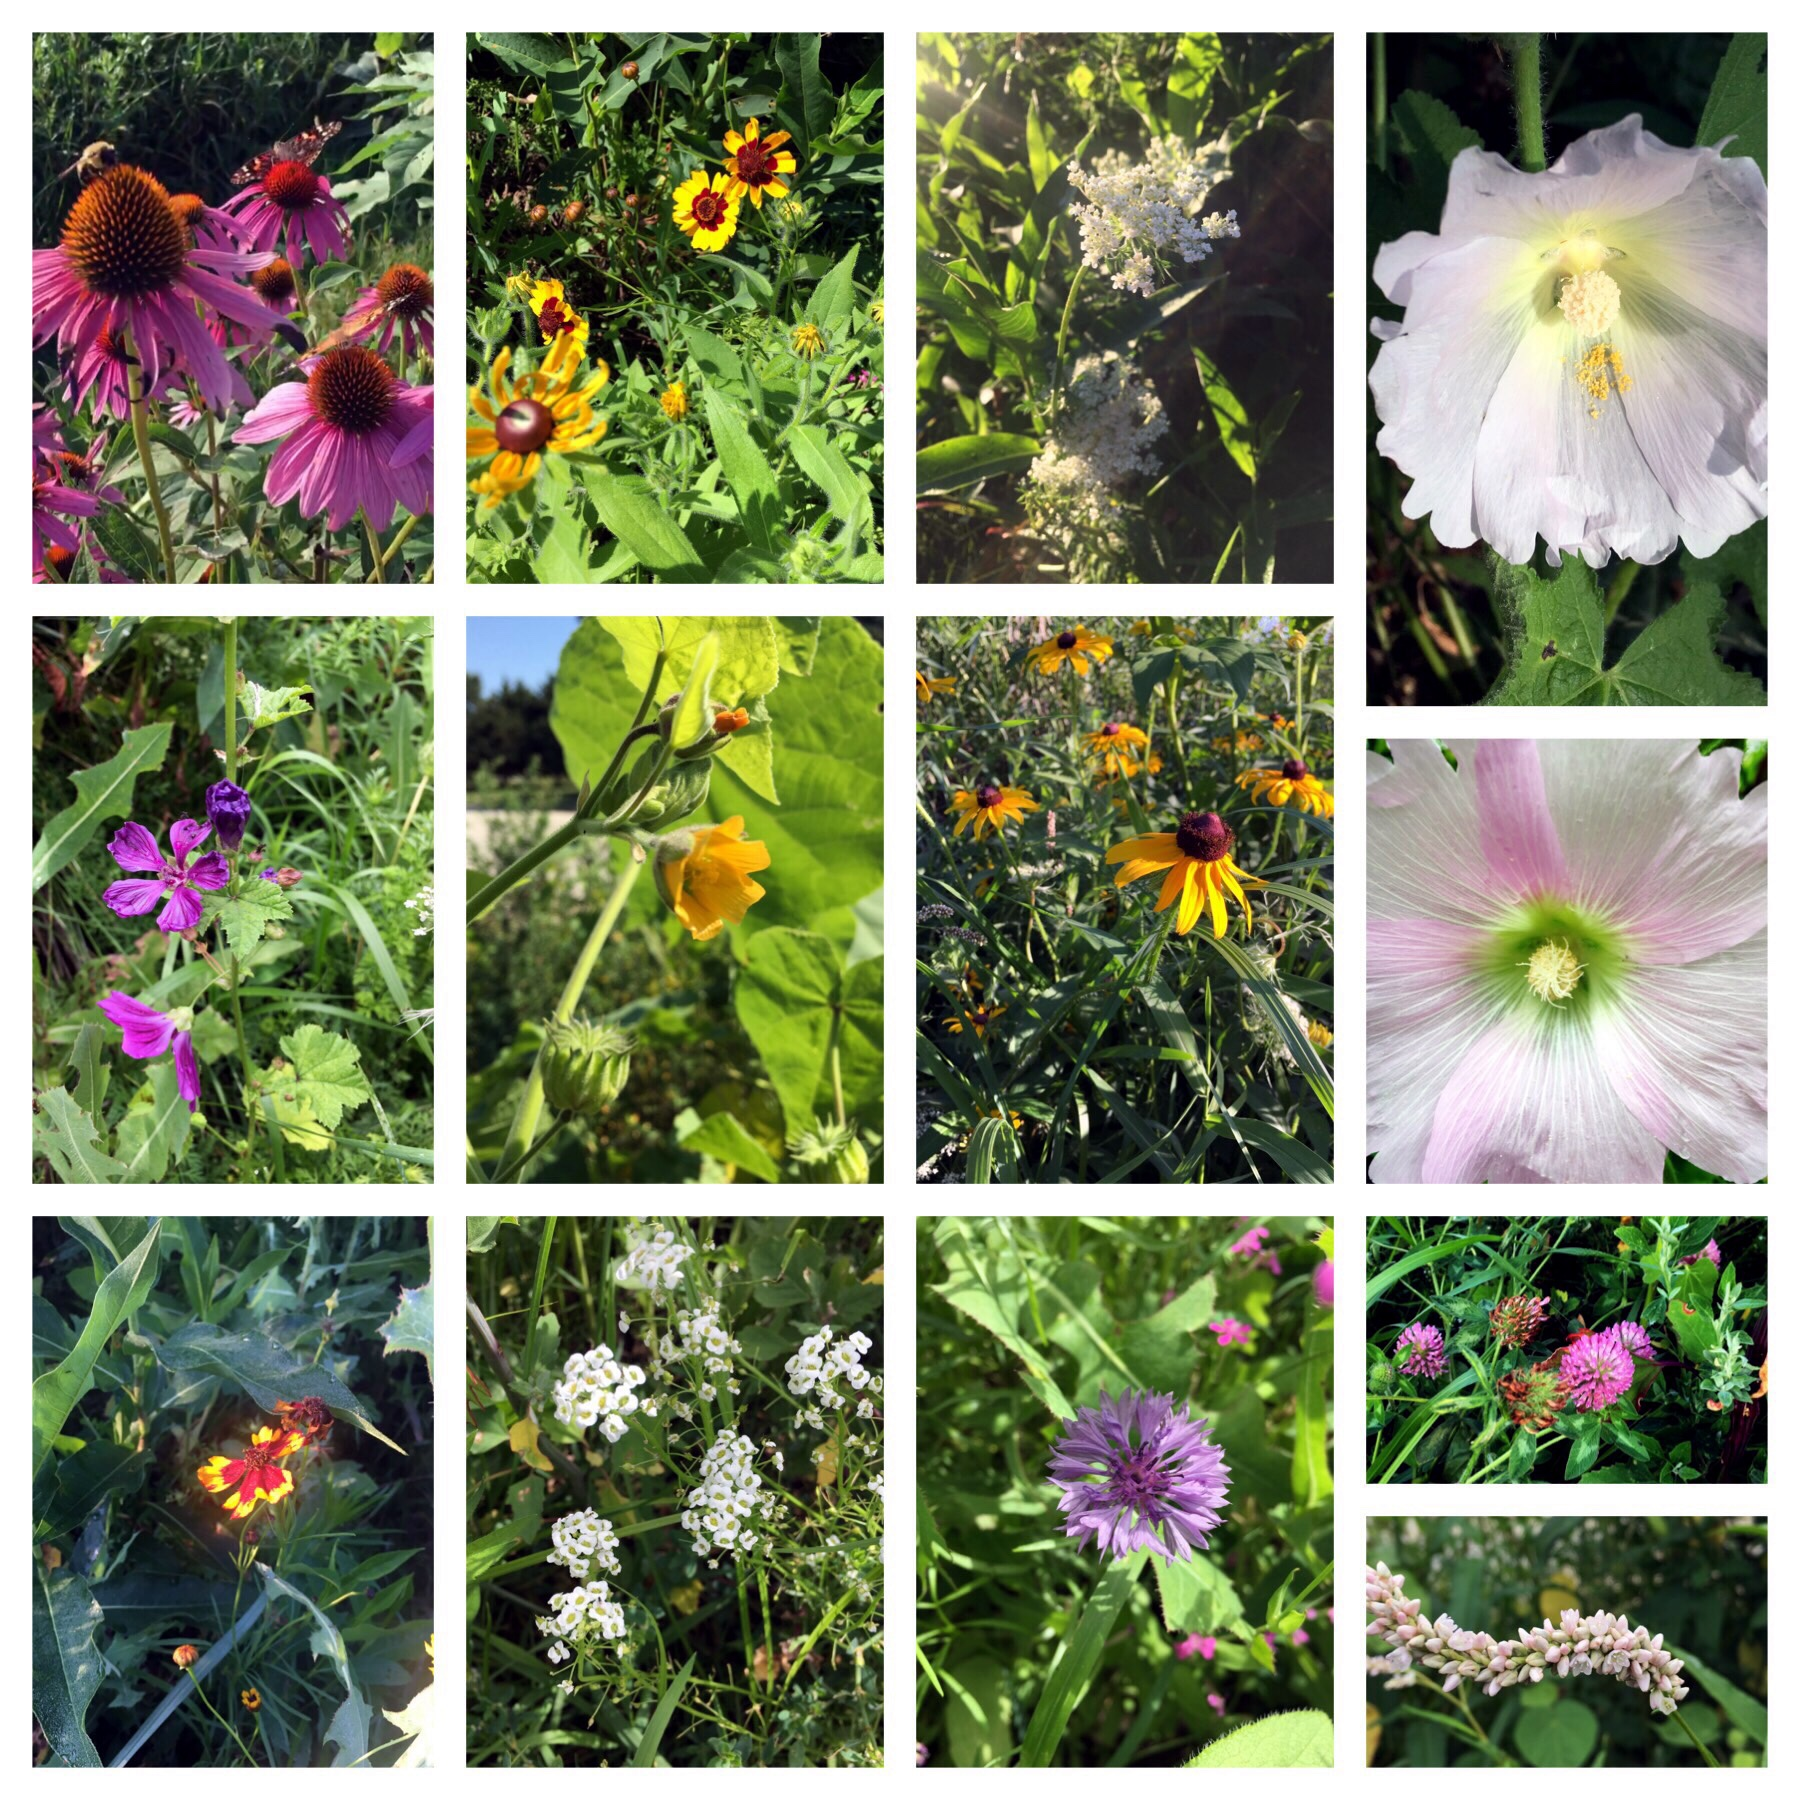 From top left to bottom right— Echinacea, Black Eyed Susan, Queen Anne's Lace, Hollyhock, High Mallow, Indian Mallow, Rudbeckia, Hollyhock, Coreopsis, Cornflower, Clover and Pinkweed.